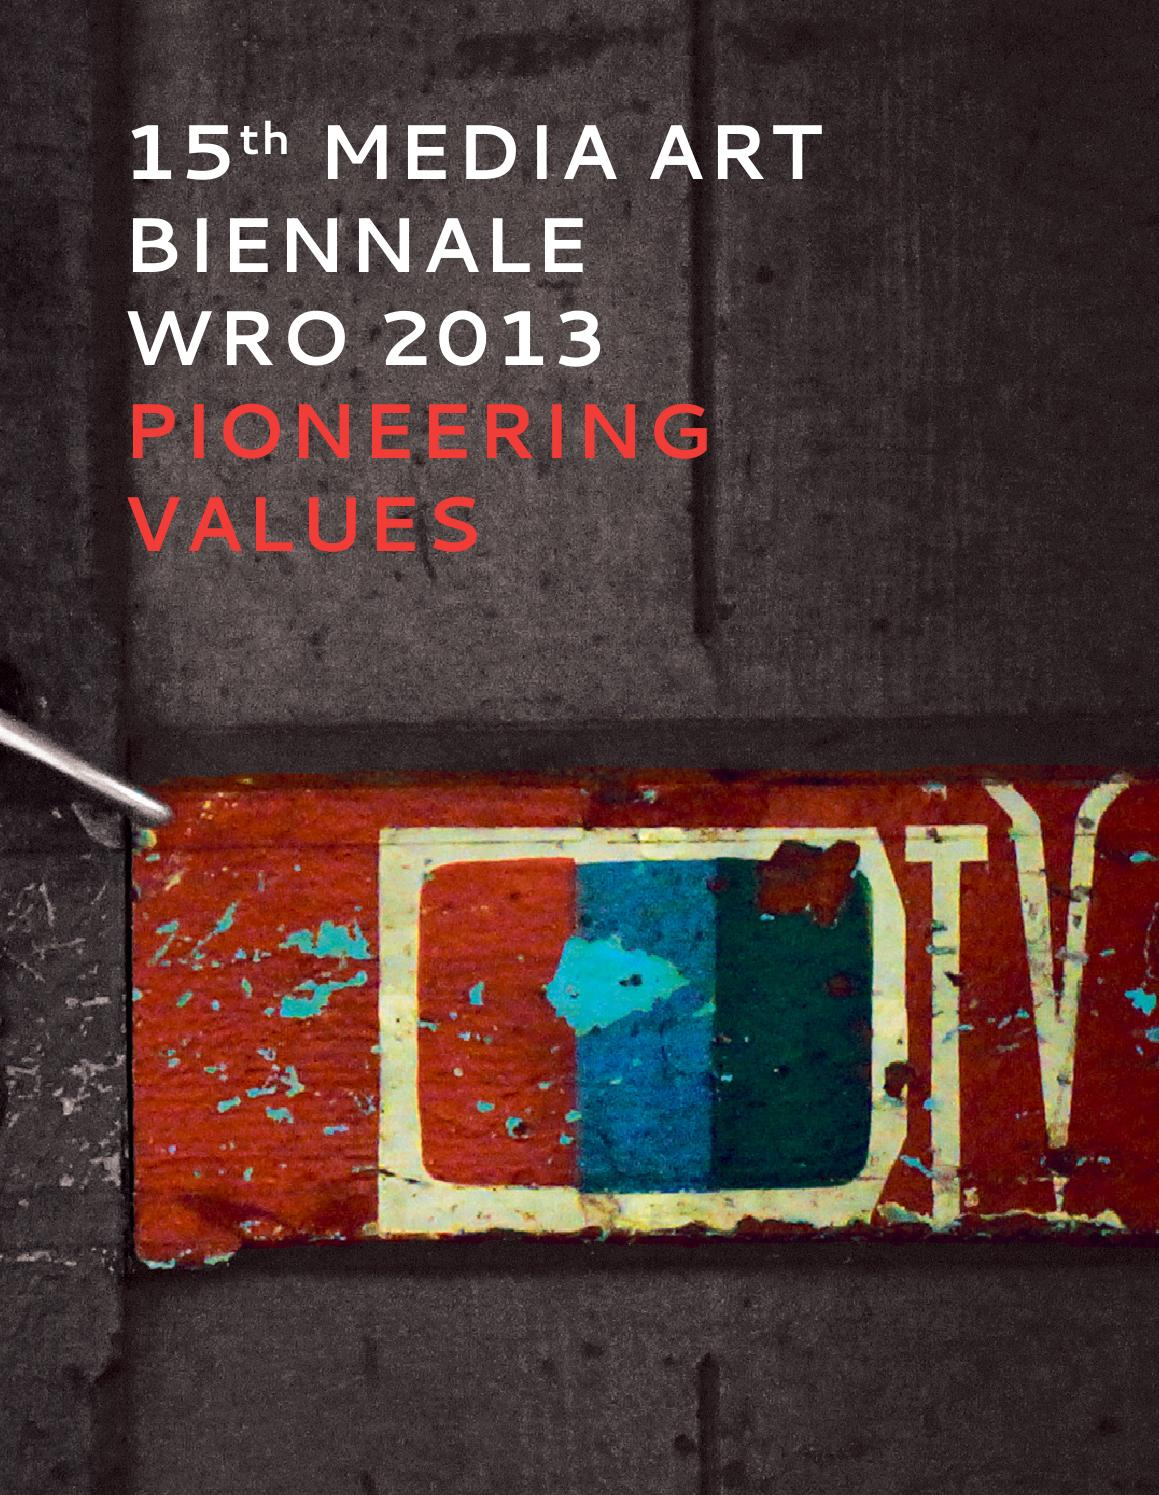 00687a56d2d5 Media Art Biennale WRO 2013 Pioneering Values - Catalog by Centrum Sztuki  WRO   WRO Art Center - issuu